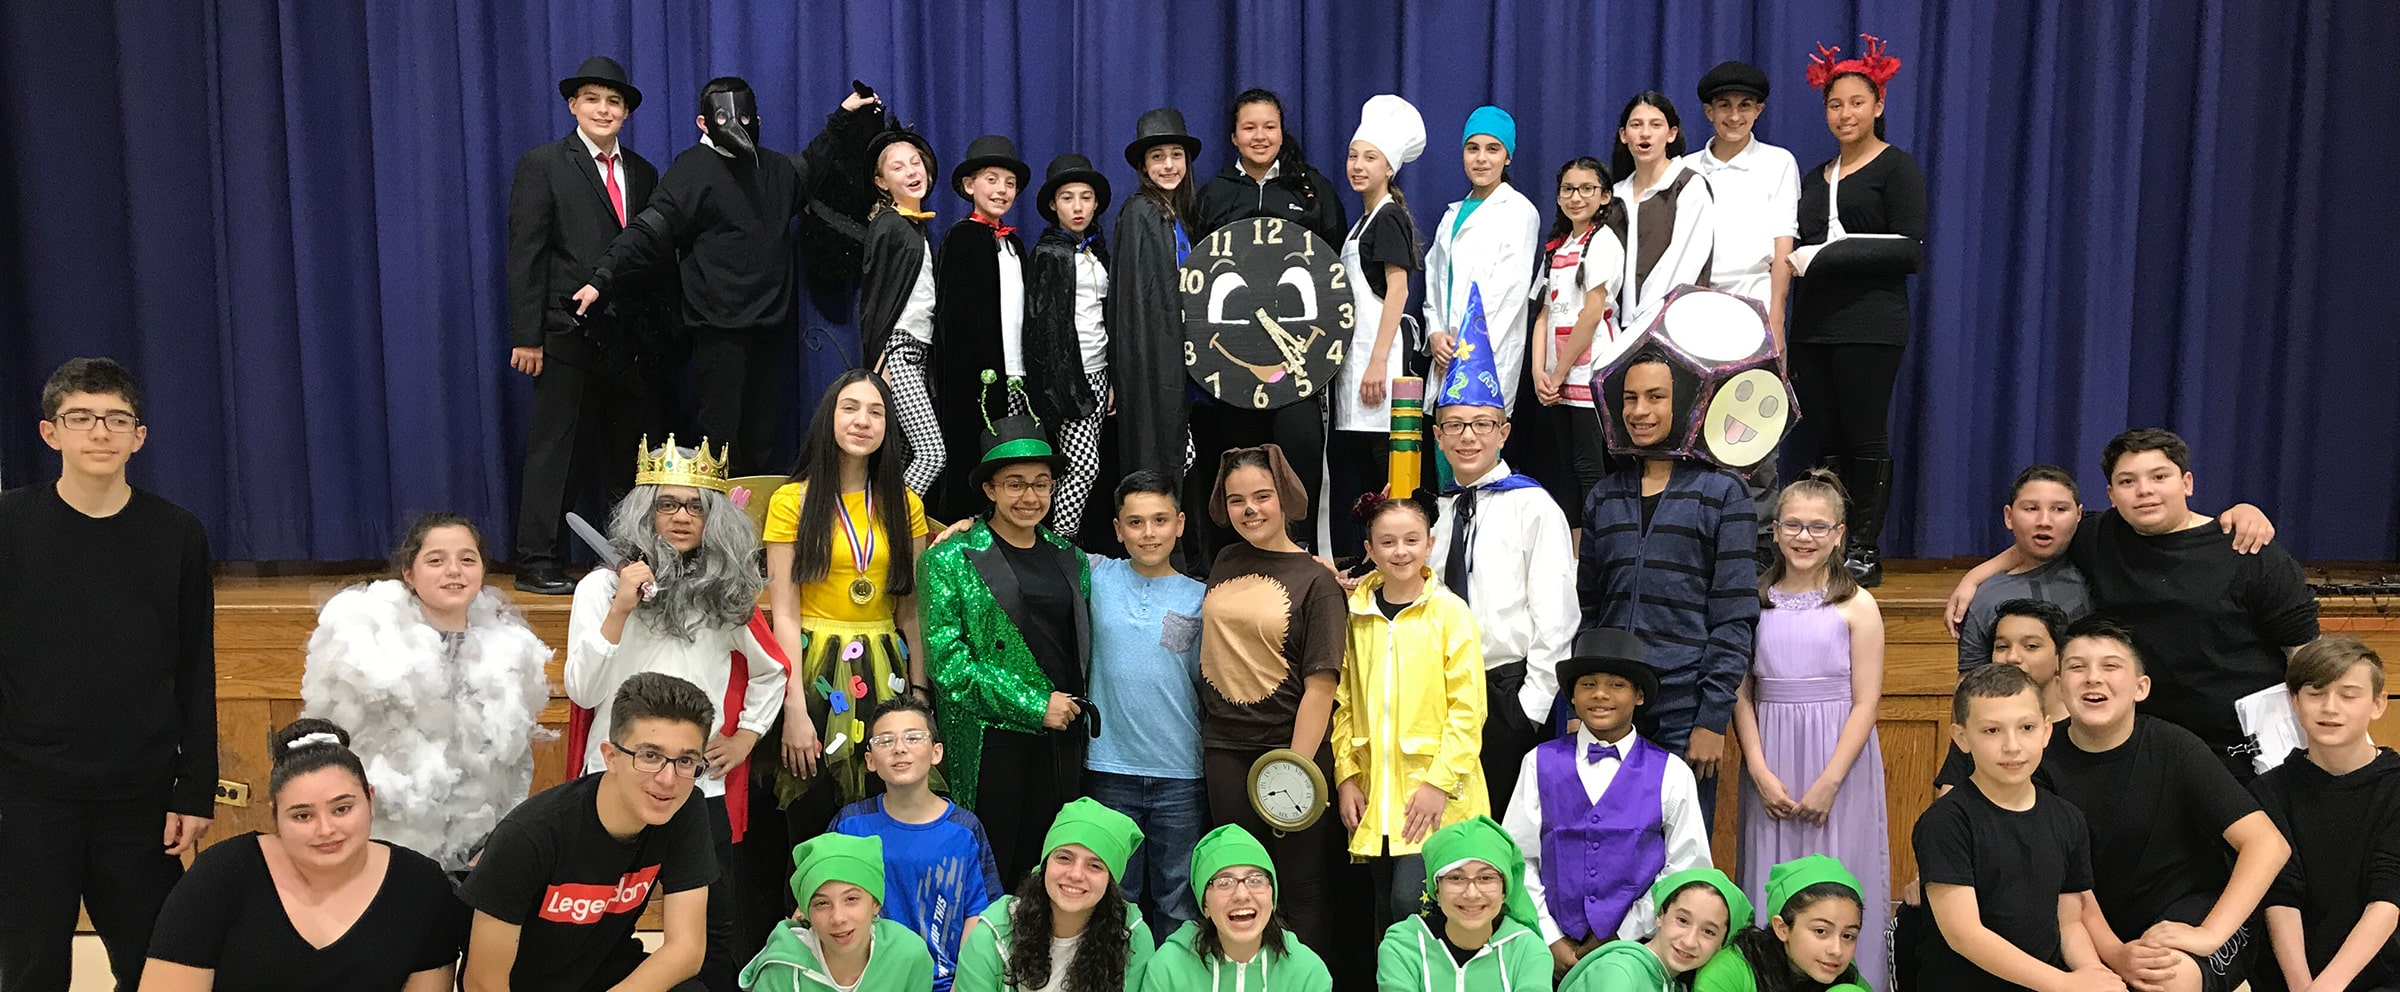 Our Lady of Grace Catholic Academy students in costume